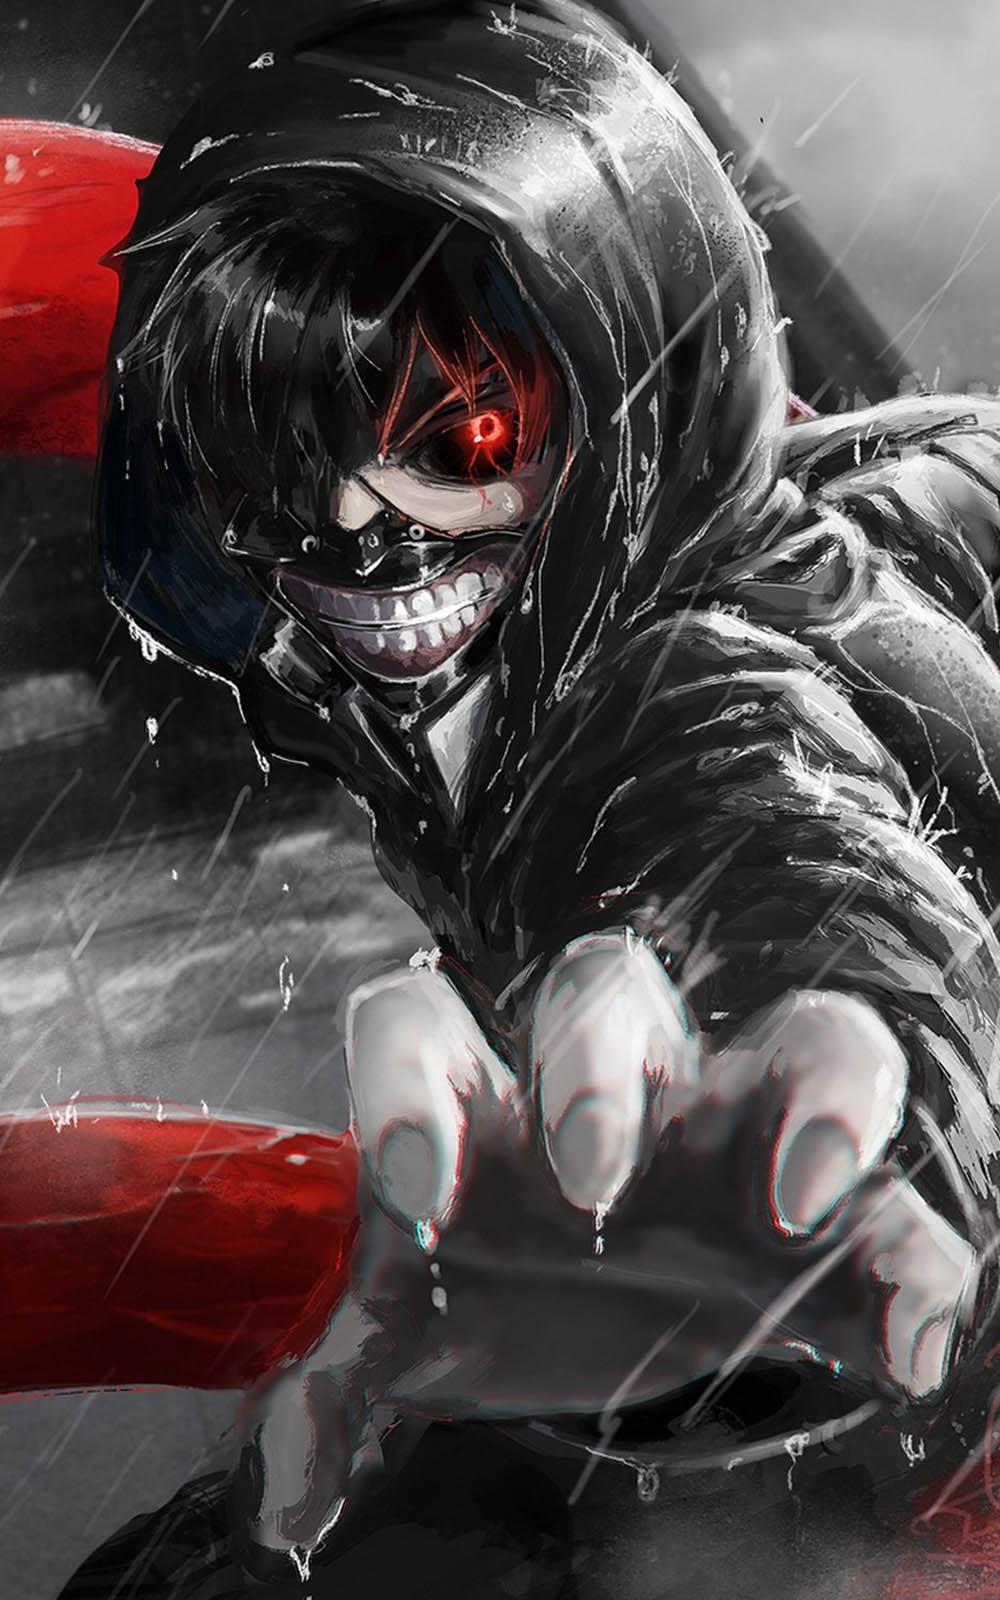 See more ideas about tokyo ghoul, ghoul, tokyo ghoul wallpapers. Tokyo Ghoul Android Phone Wallpapers - Wallpaper Cave